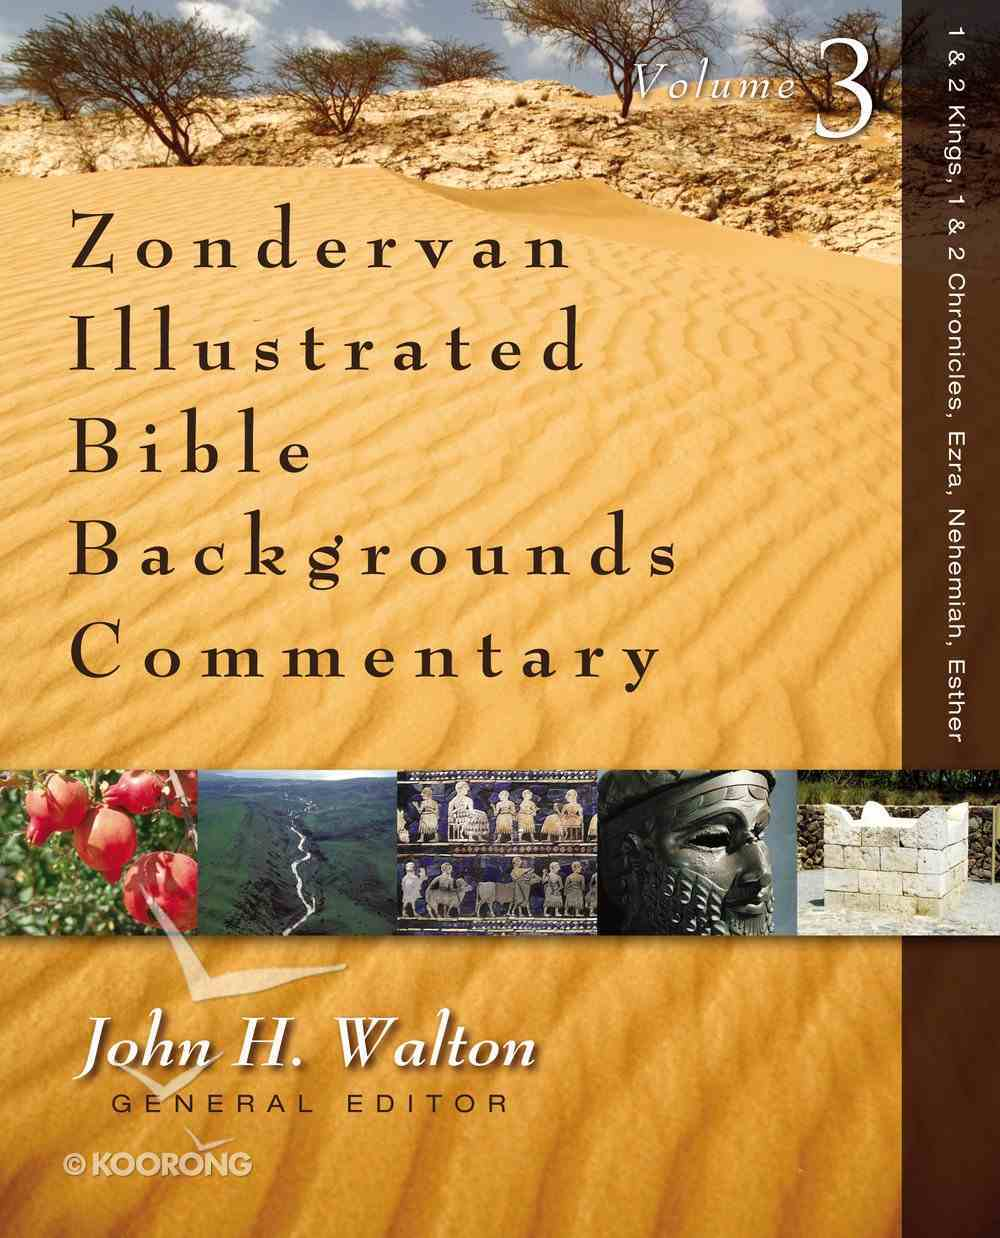 1 & 2 Kings (Zondervan Illustrated Bible Backgrounds Commentary Series) eBook